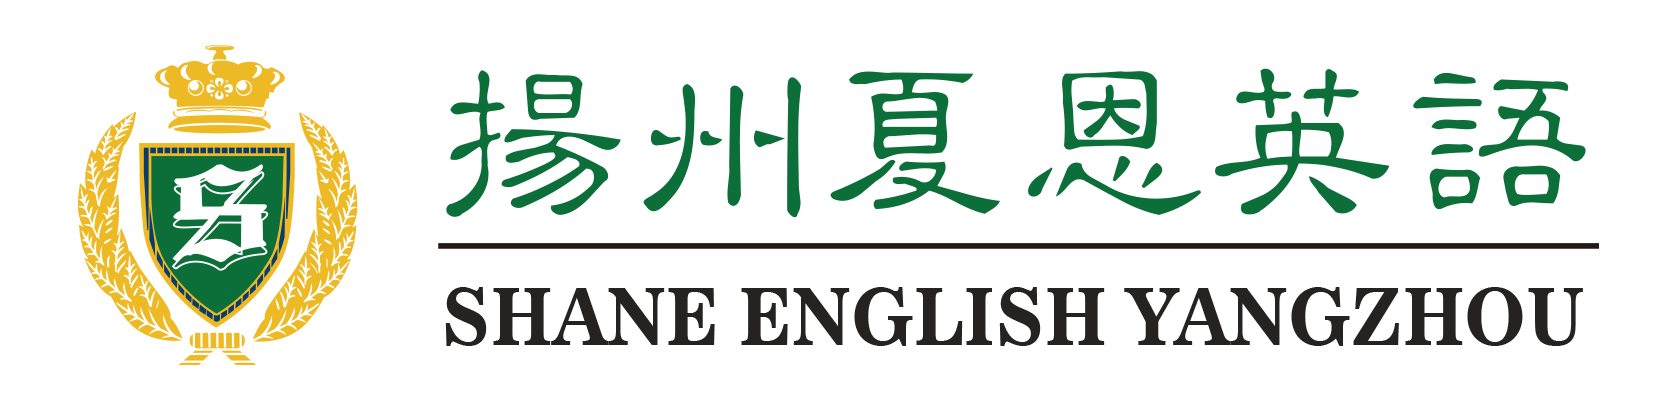 ESL Teacher - 16k-20k¥/mo Initial (DOE); ½ Beijing Cost of Living; Z-Visa, Flight, Insurance (paid); Studio Apt. House Selection; Max. 27hr/wk; 22 Days PTO; Weekly HSK Chinese Class